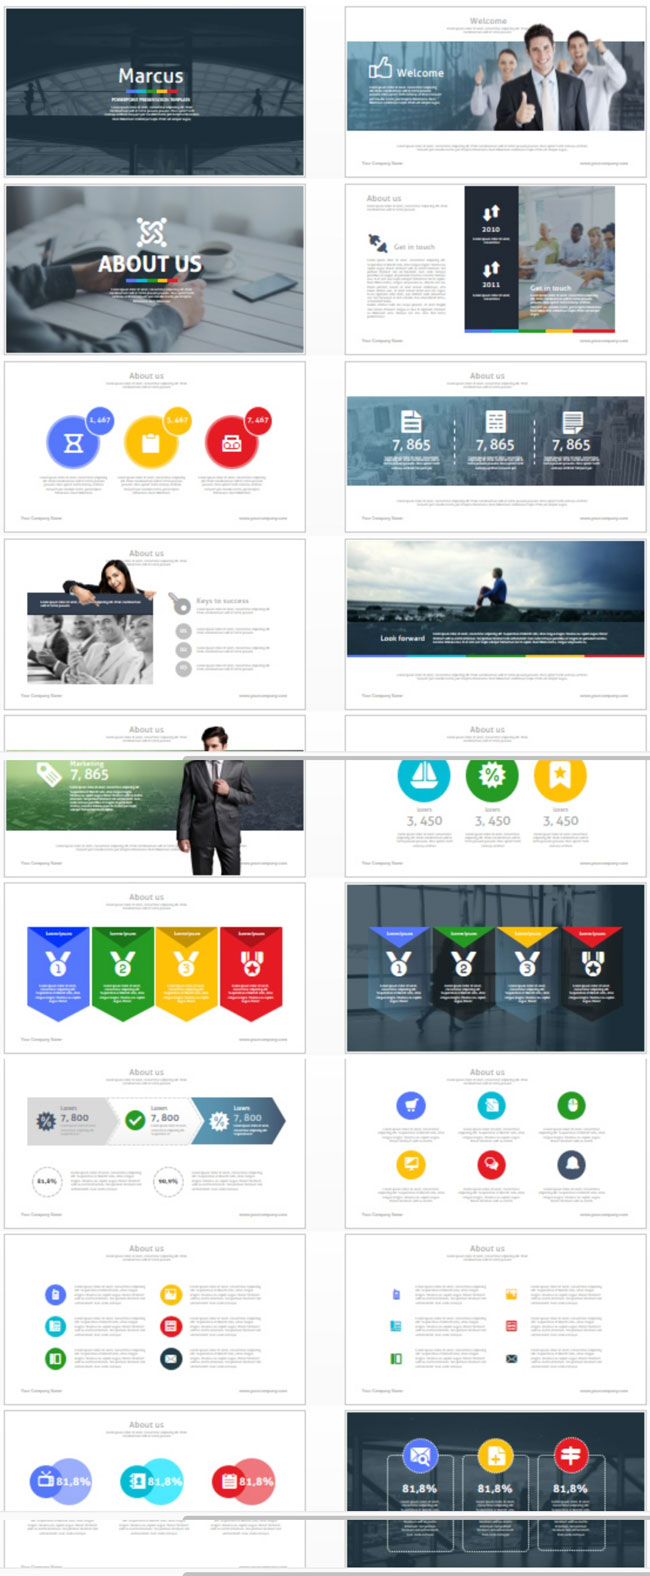 Marcus-Powerpoint-Presentation-Template